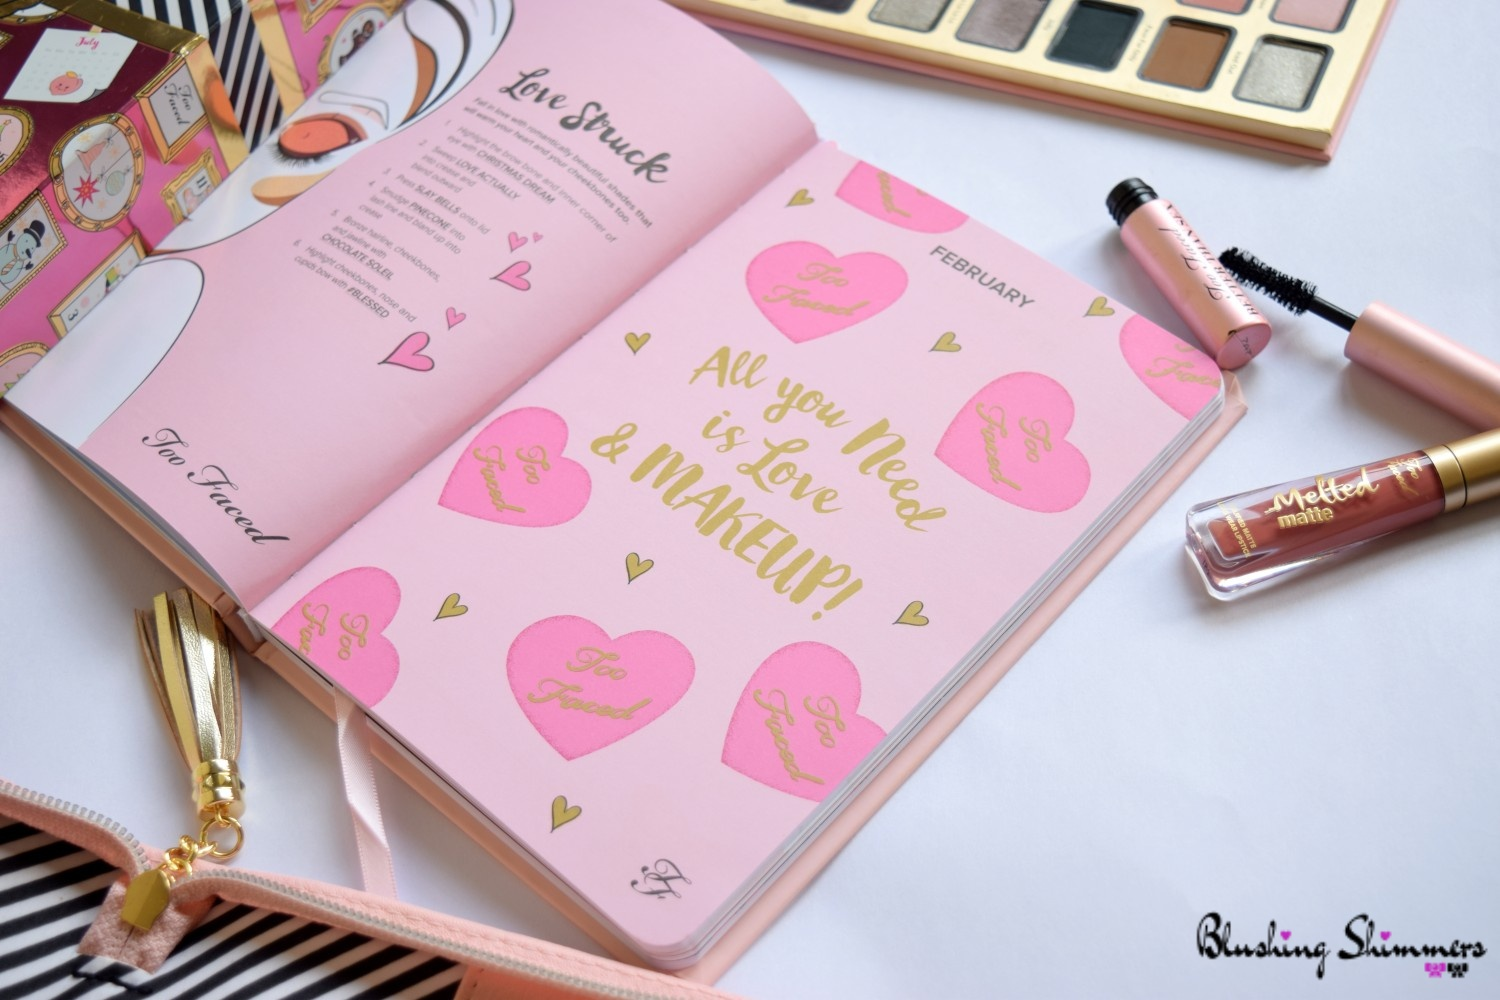 Sephora Too Faced gift set diary